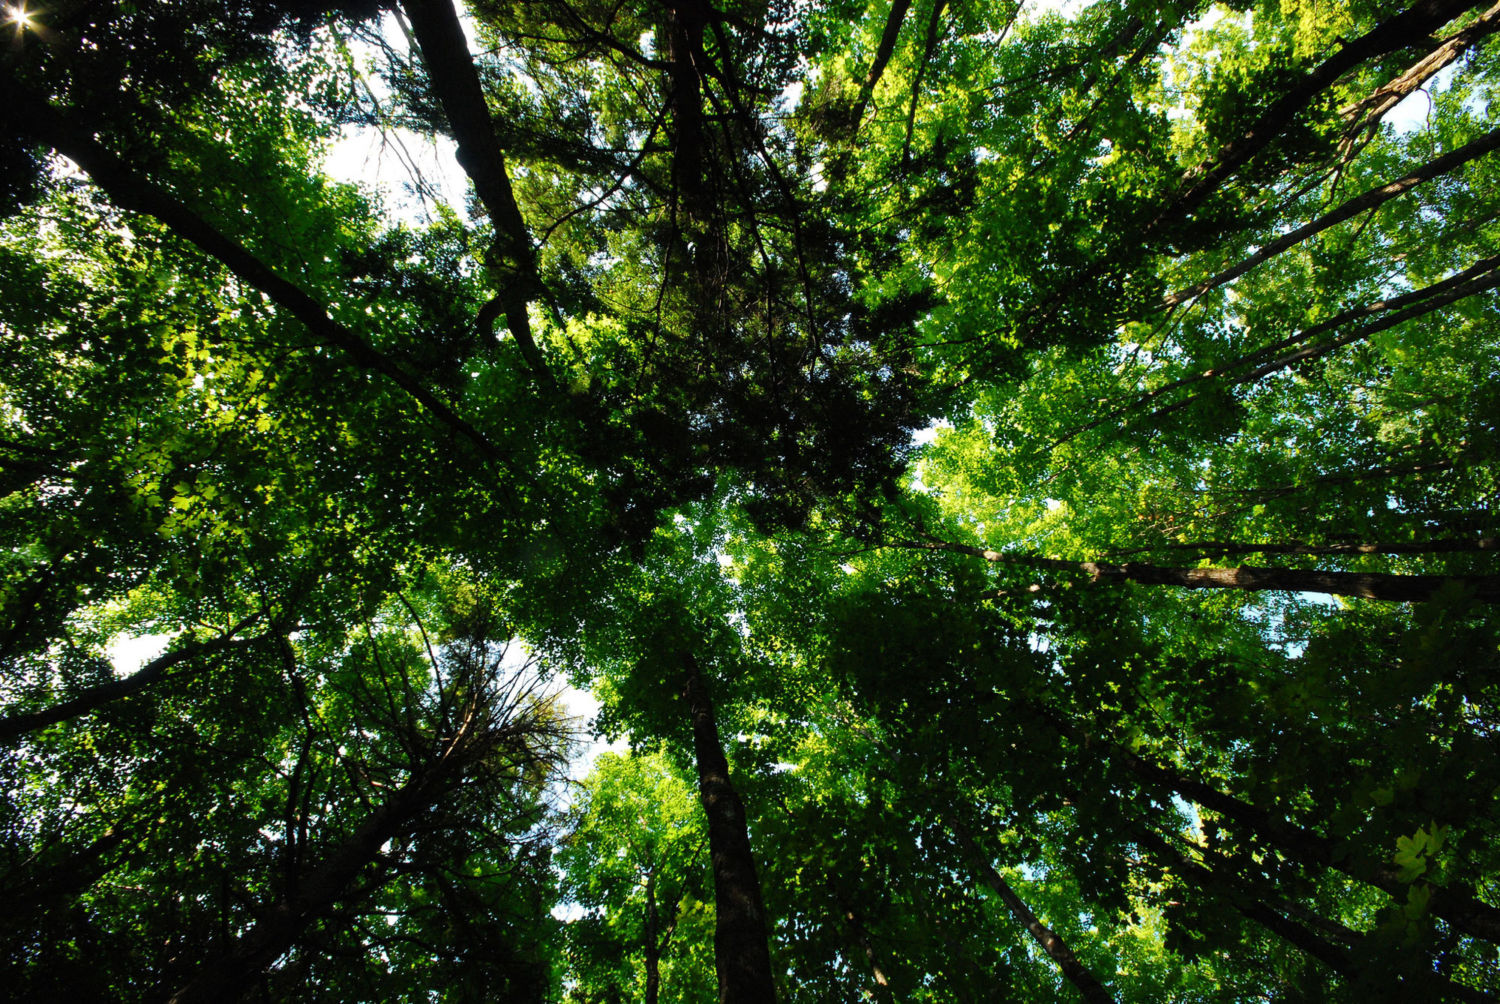 Study finds huge potential to grow trees, capture carbon emissions